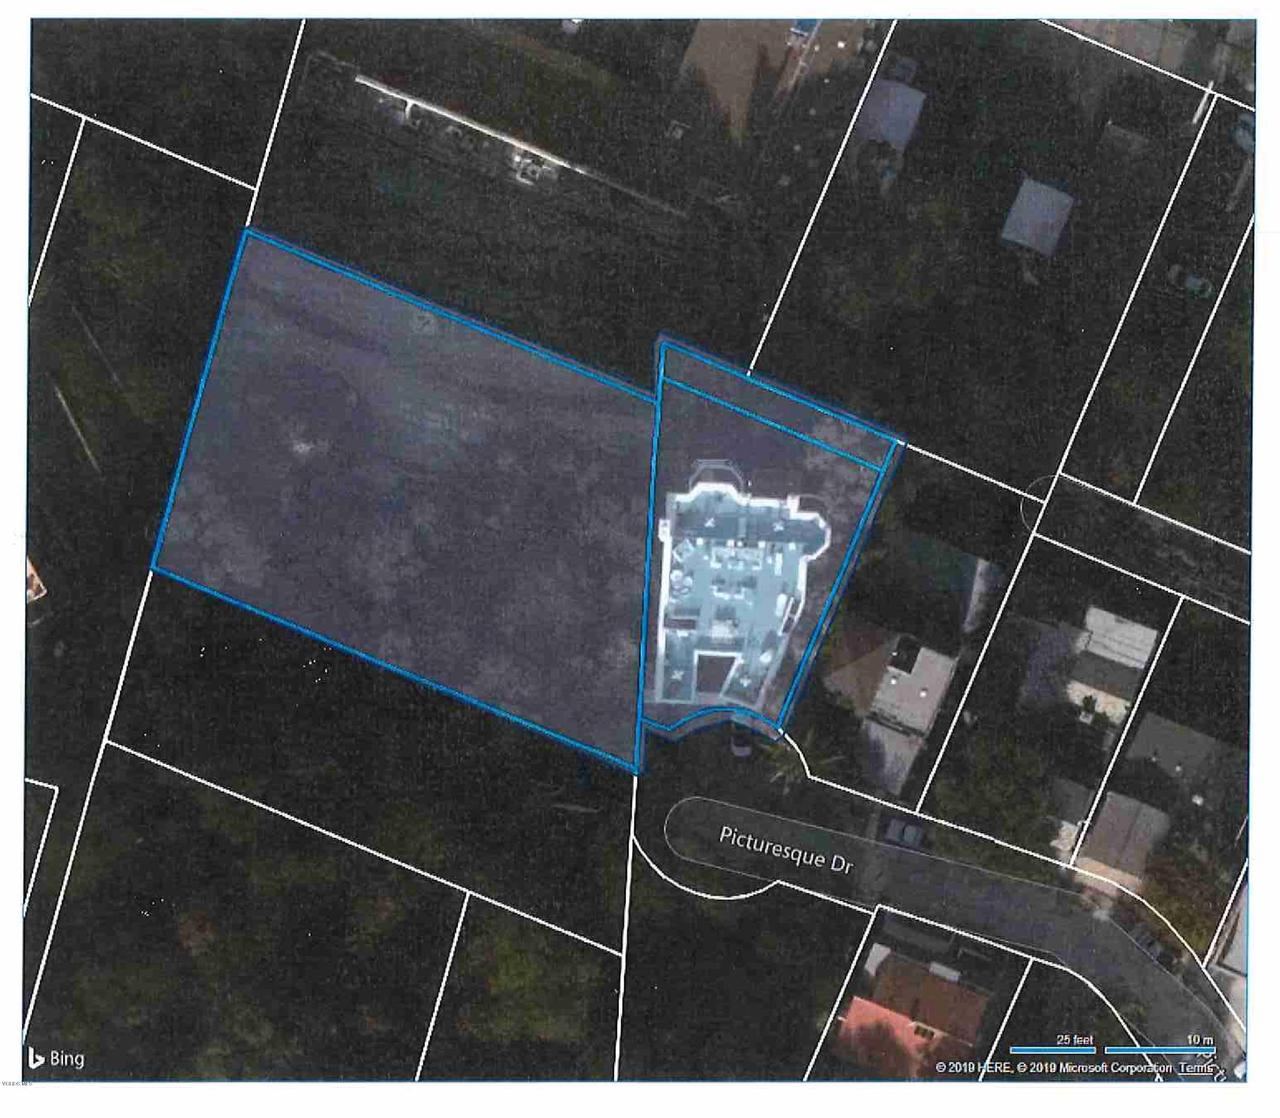 11699 PICTURESQUE, Studio City, CA 91604 - Overlay Blue Additional Lot (2)